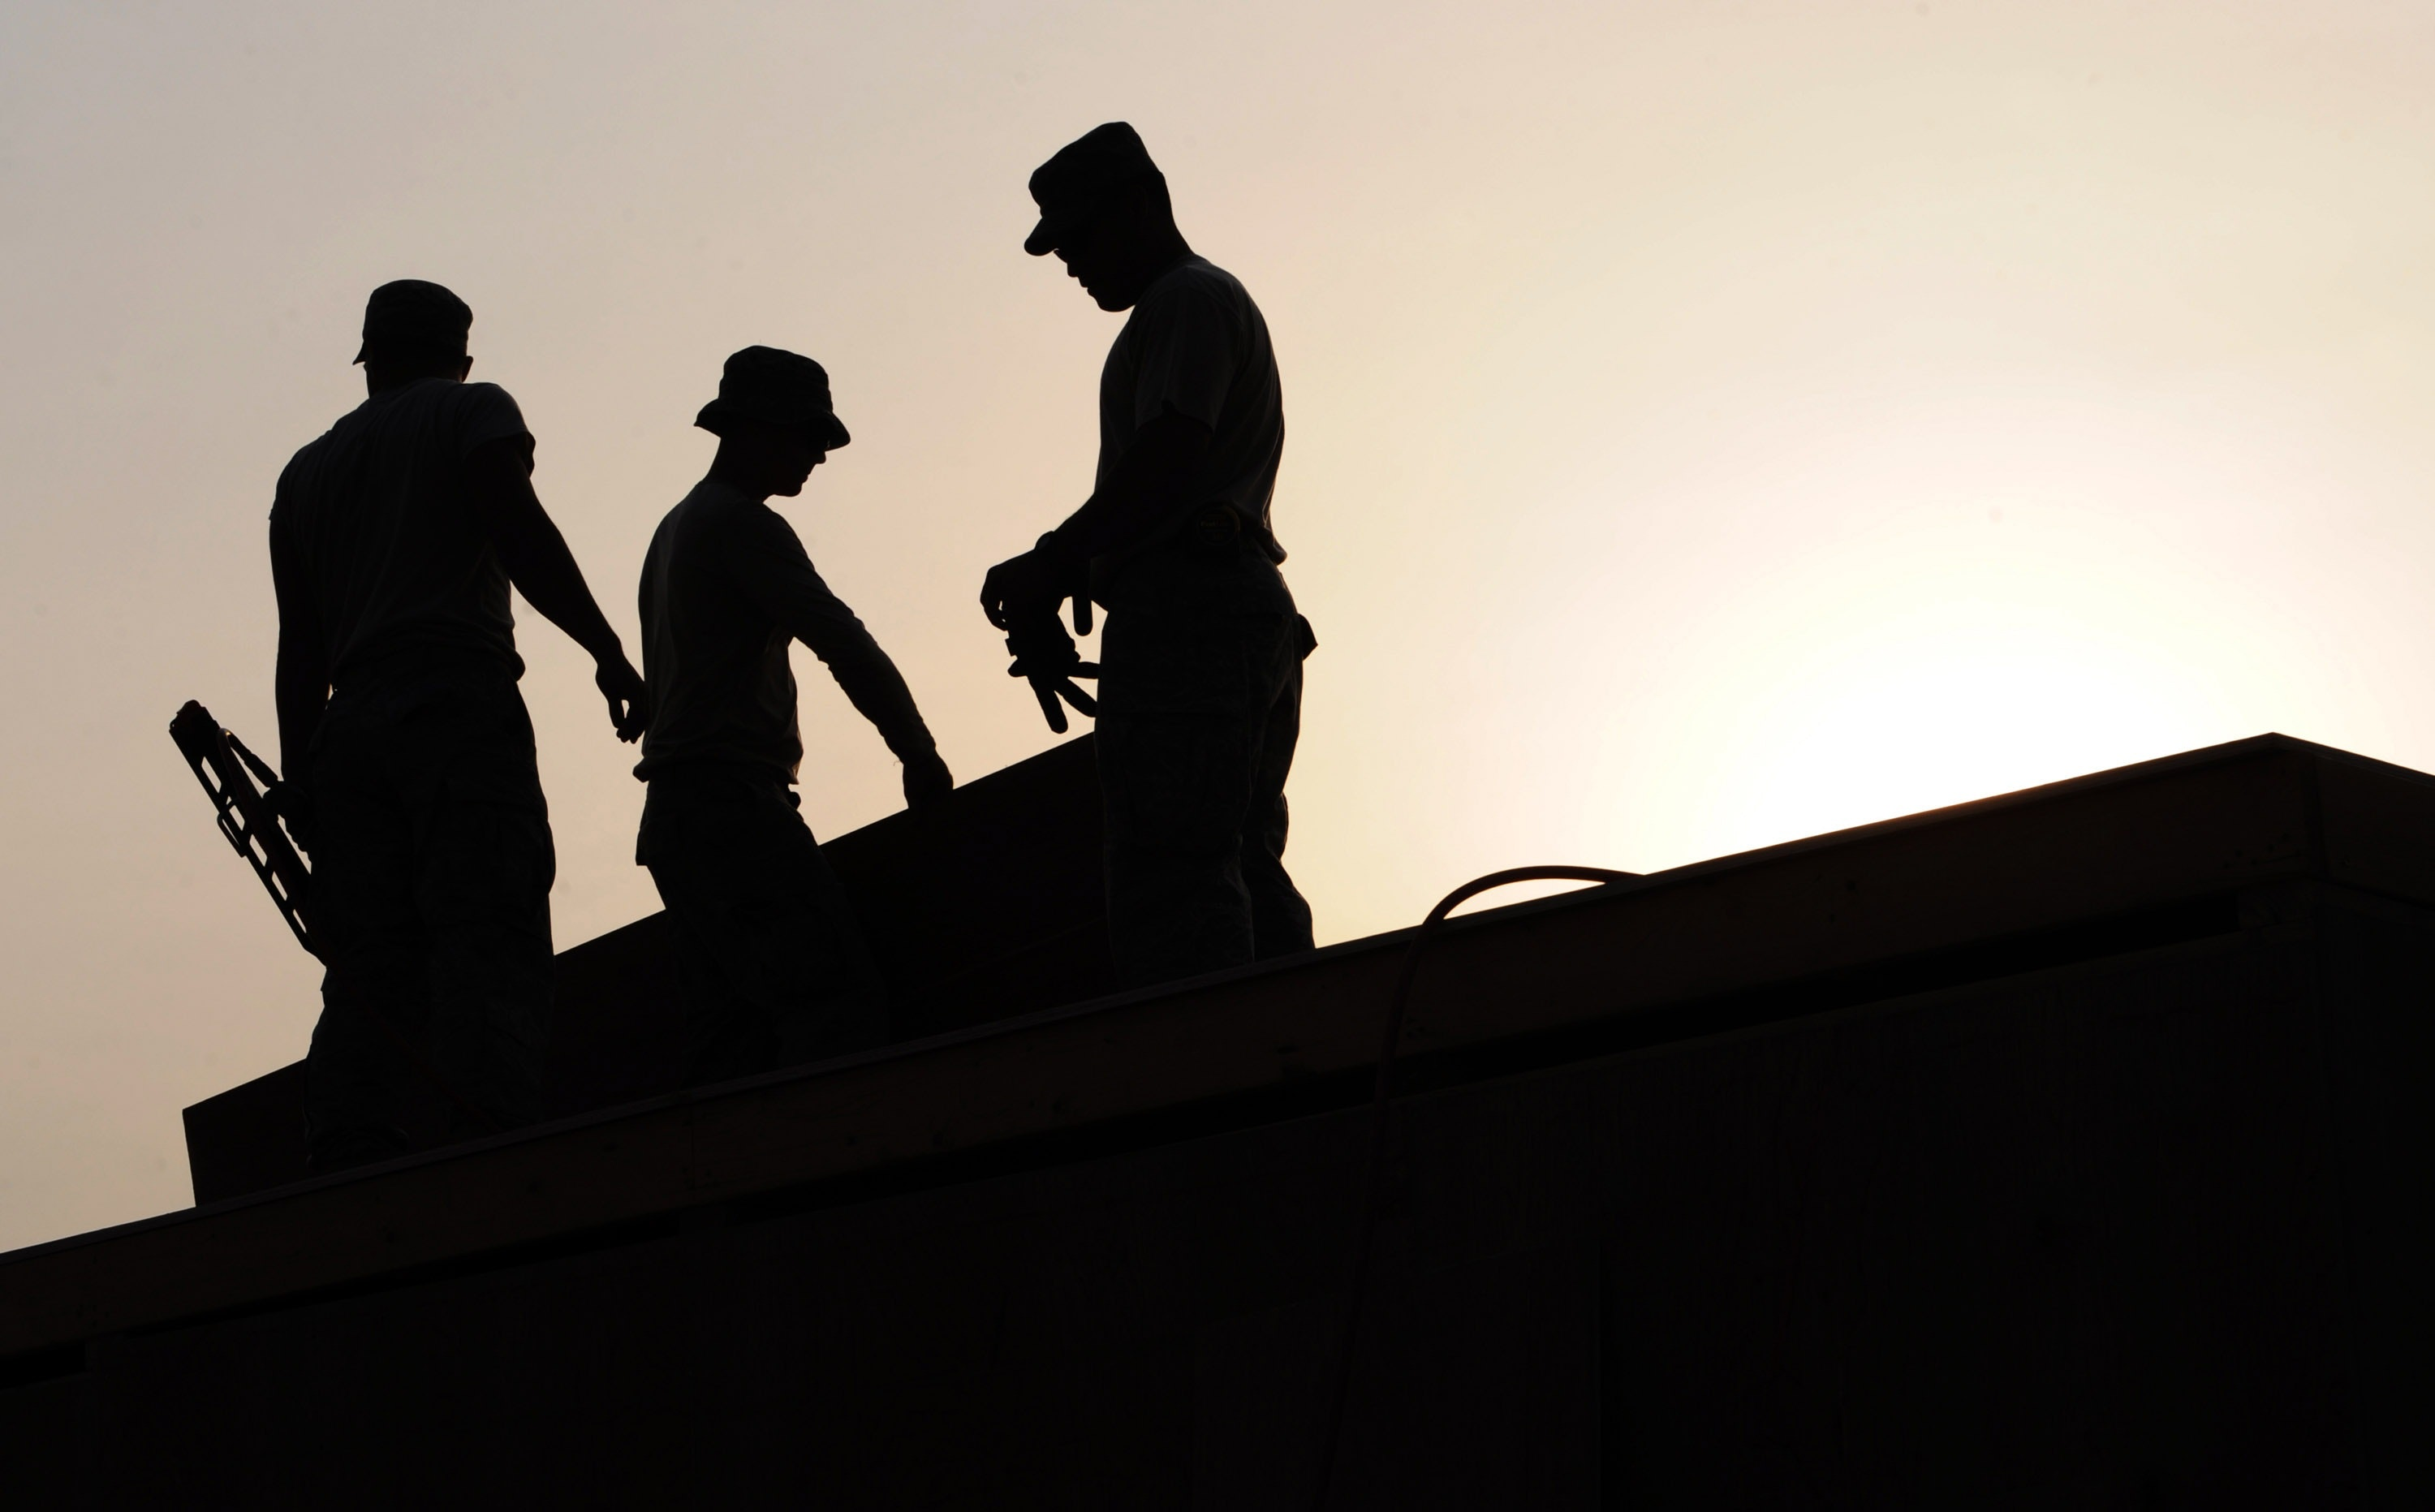 construction-workers-dol-article